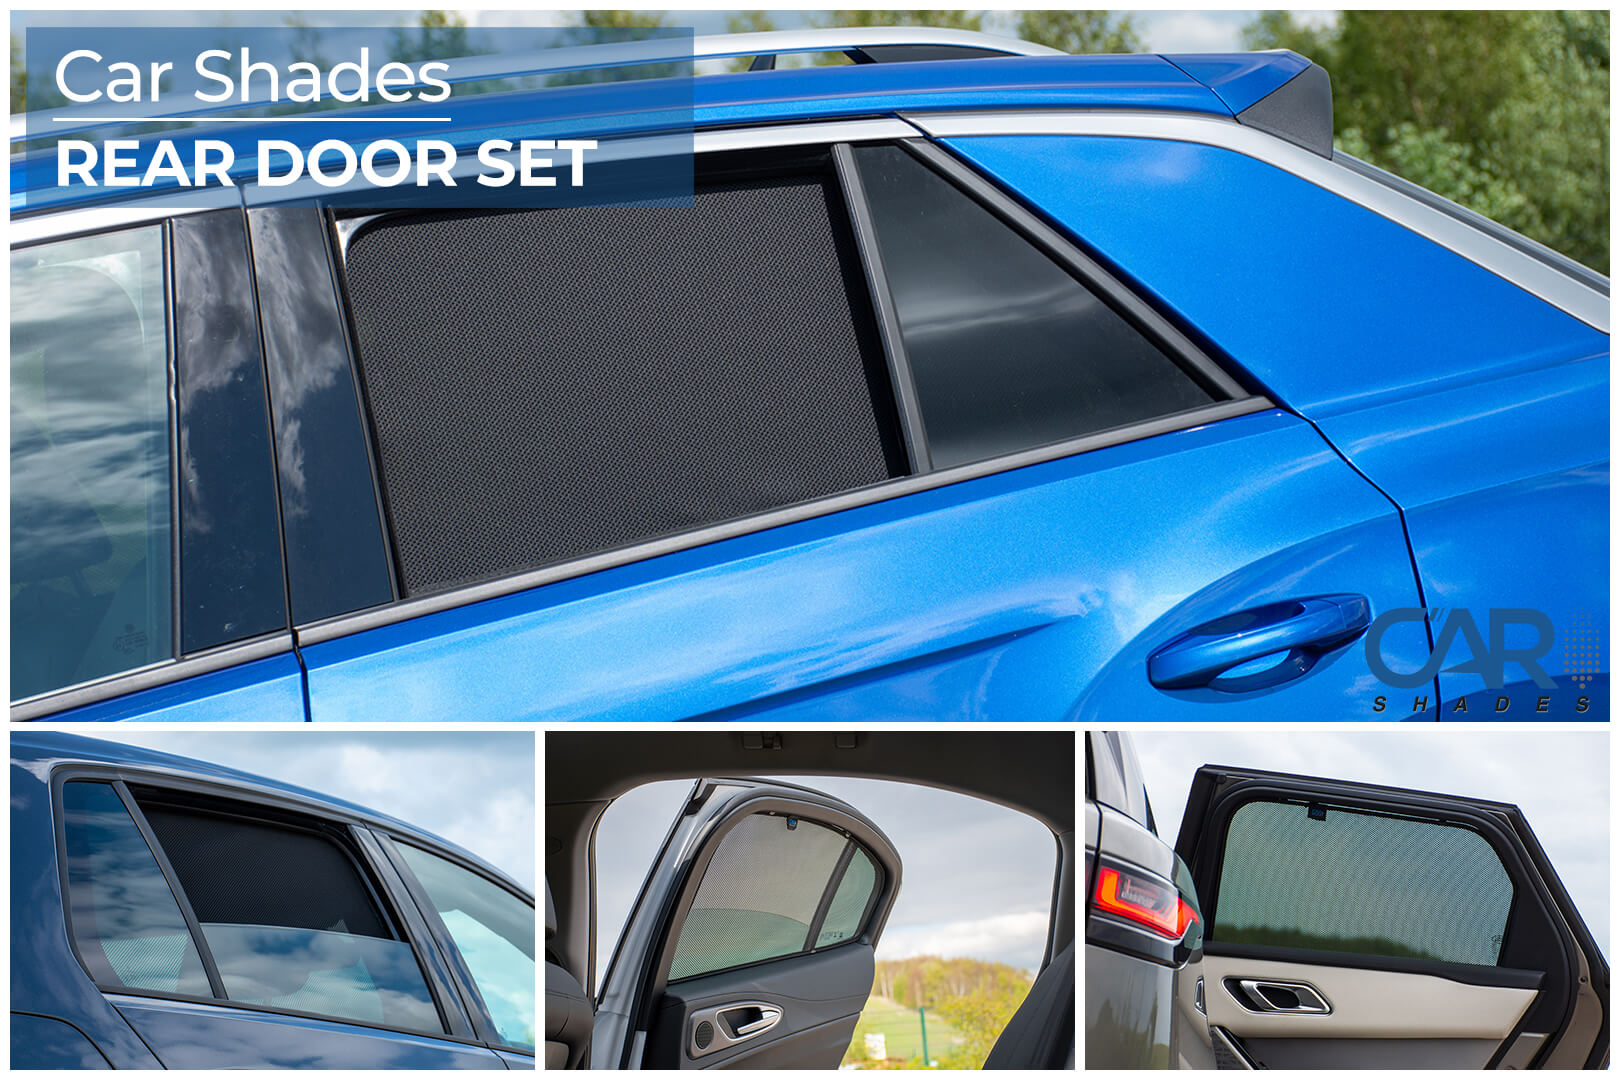 Car Shades - Rear Door Set